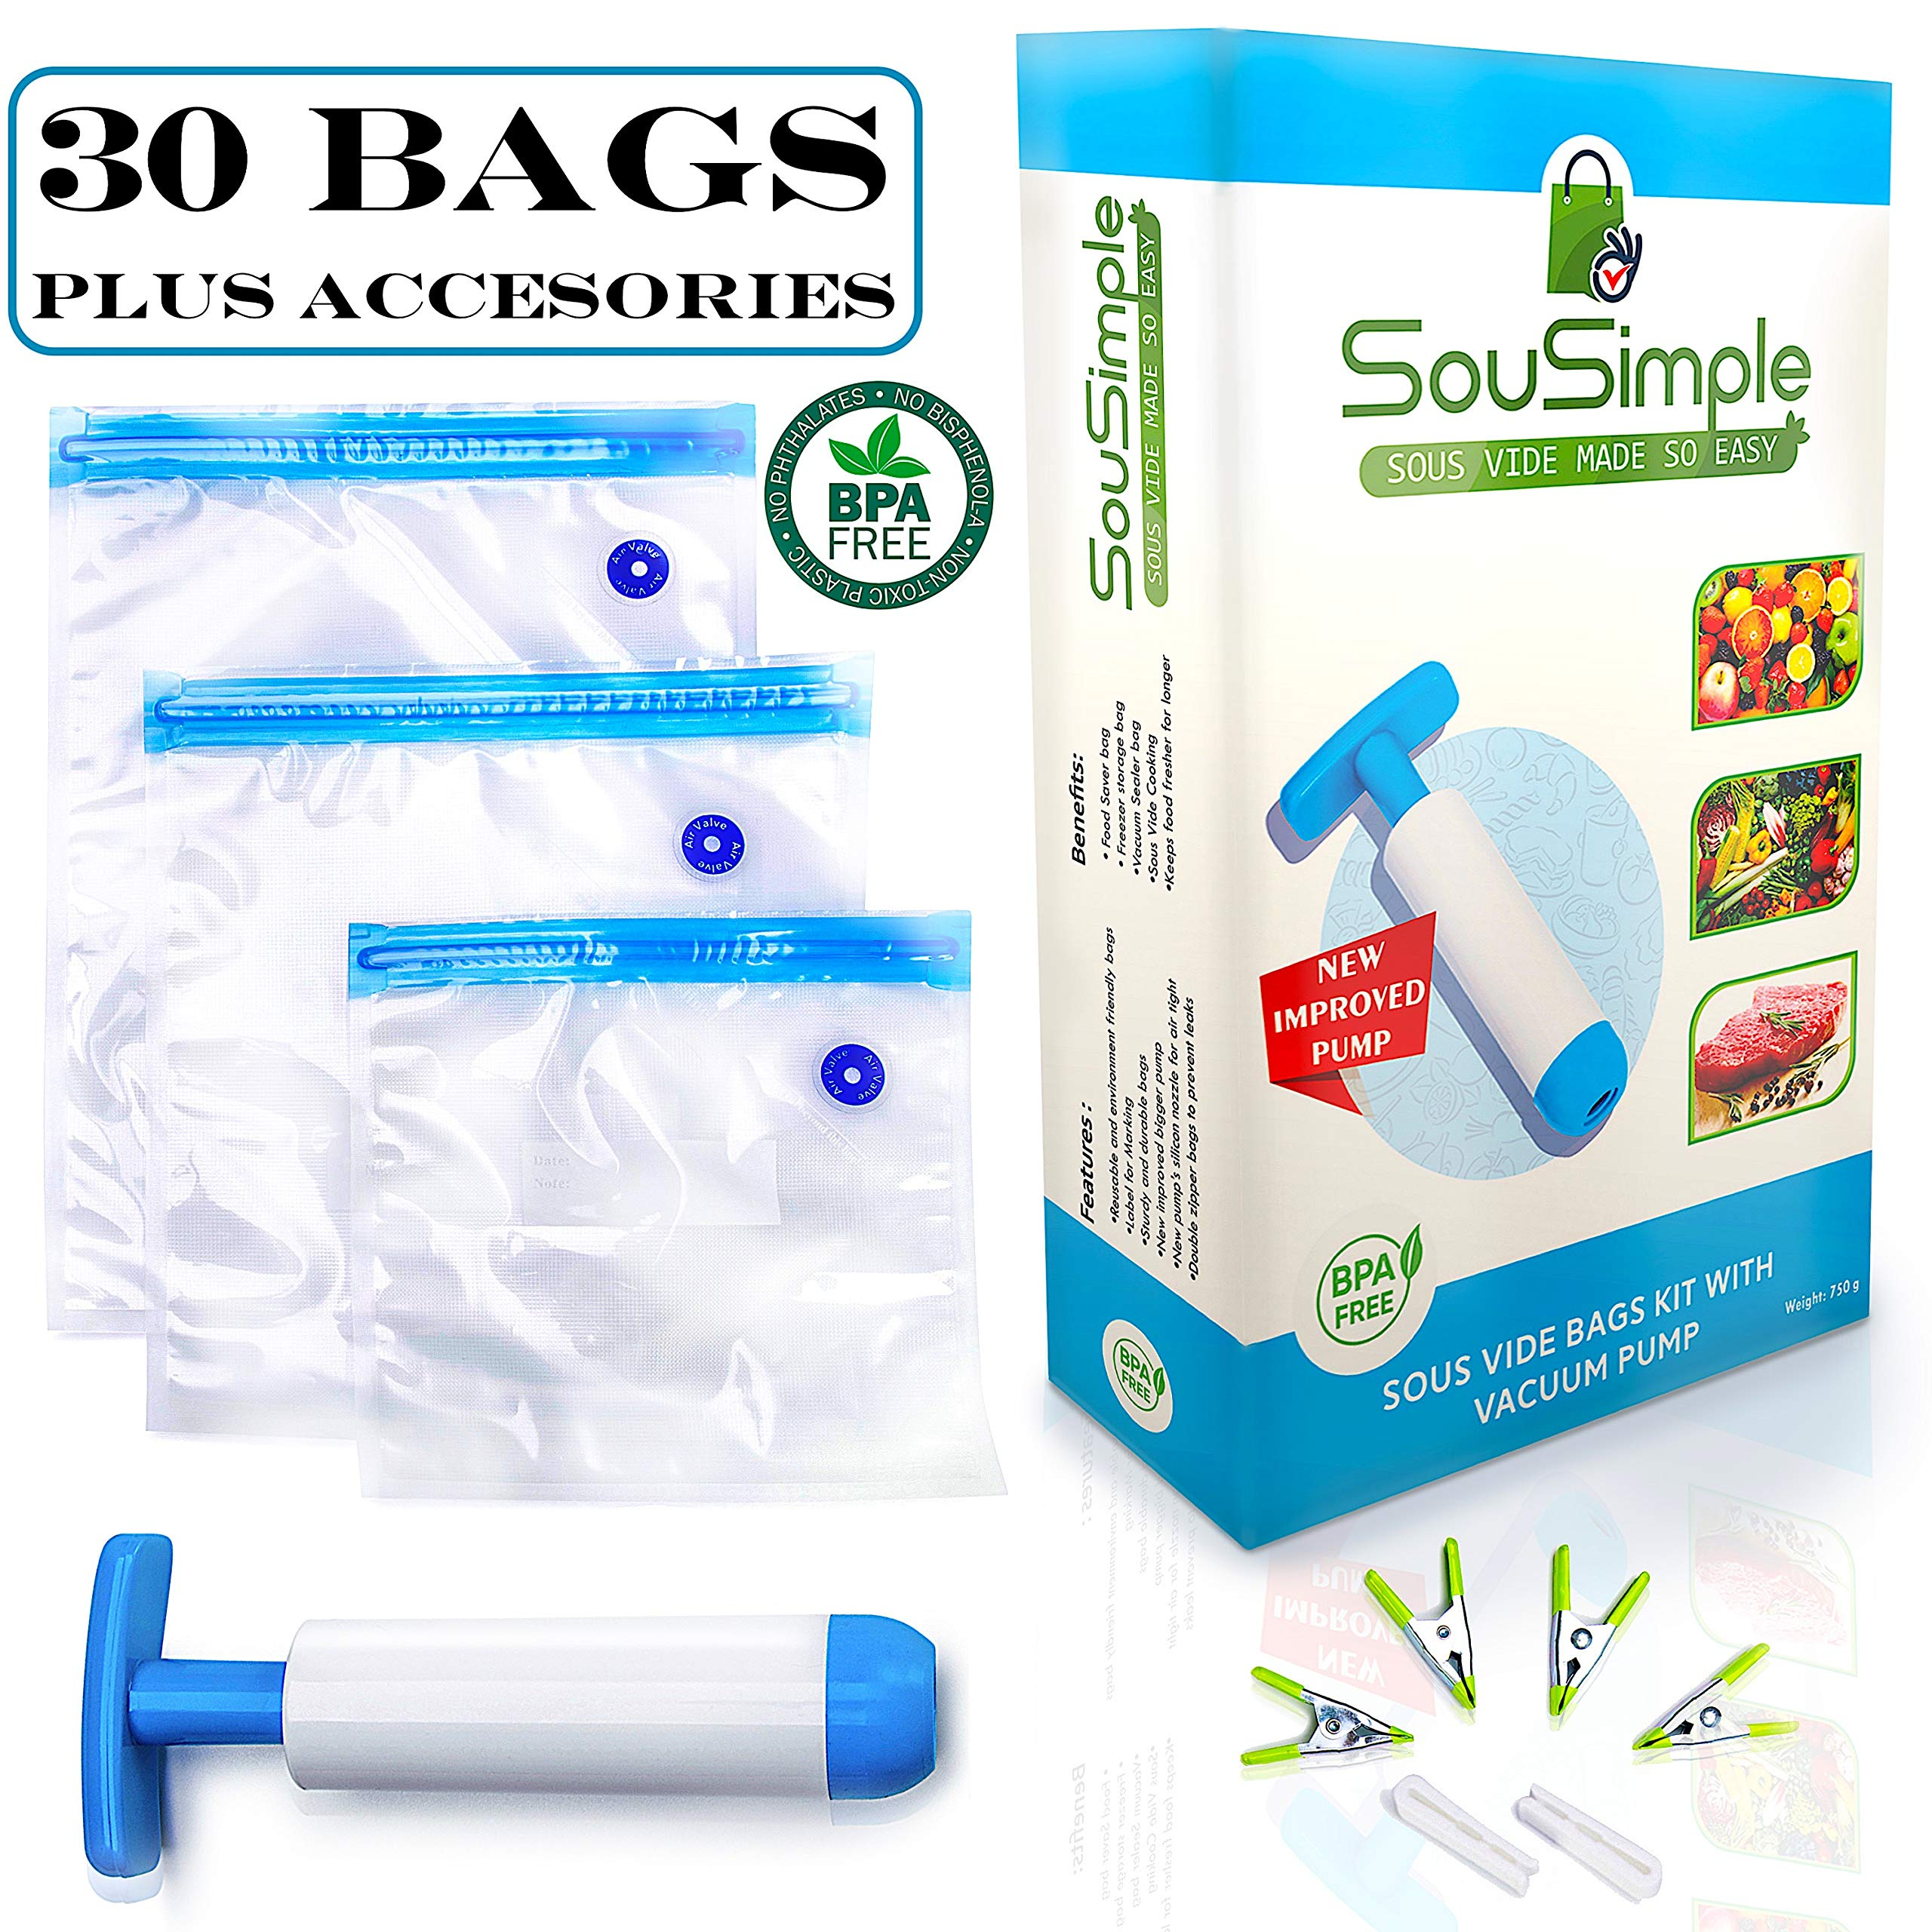 Sous Vide Bags BPA Free - 30 Reusable Vacuum Food Storage Bags - 3 Sizes Sous Vide Bag Kit for Anova and Joules - NEW PUMP Design by SouSimple